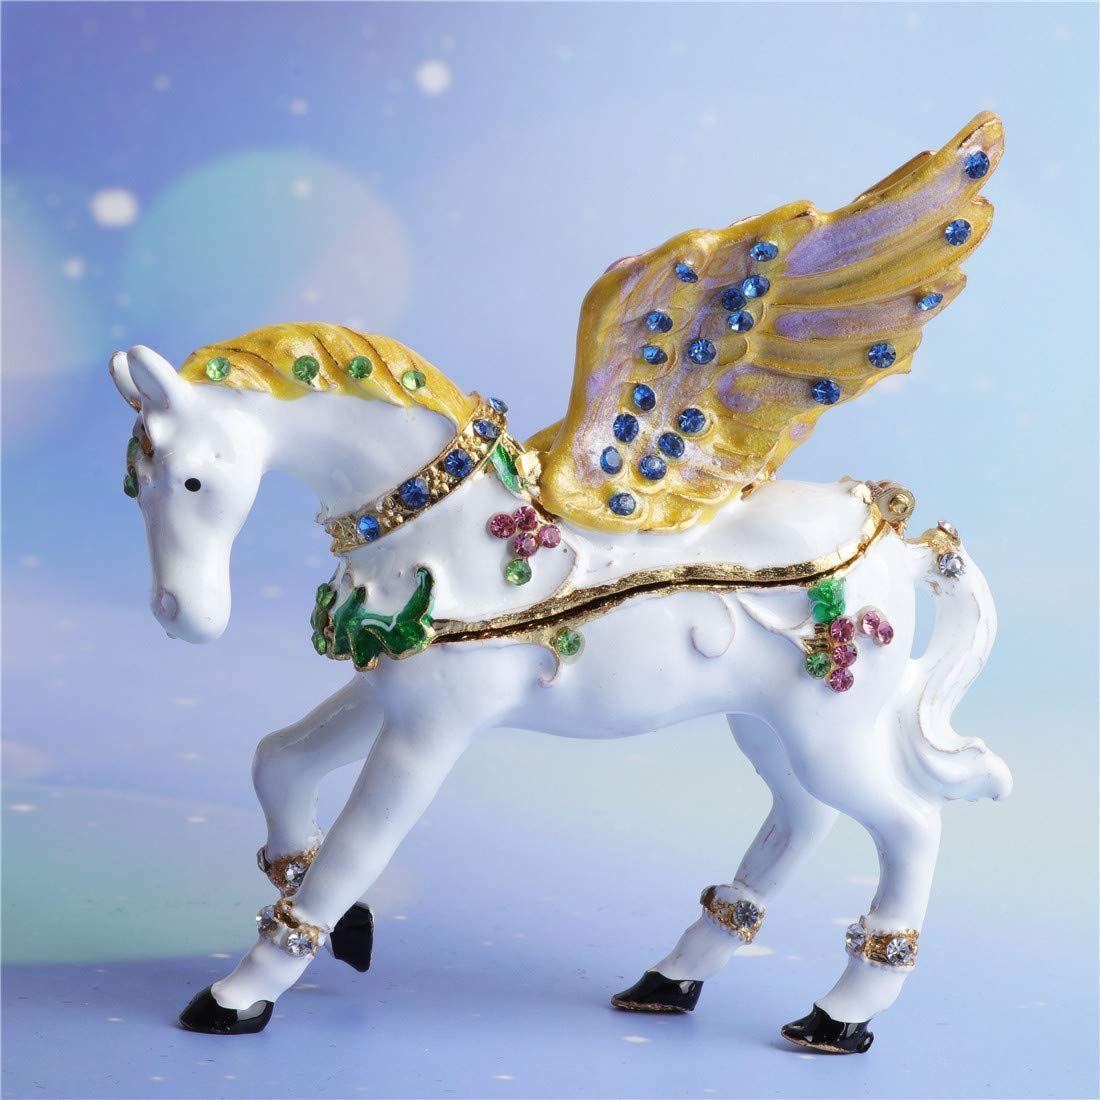 Waltz/&F Hinged Trinket Box Bejeweled Hand-painted Animal Figurine Collectible Flying Horse